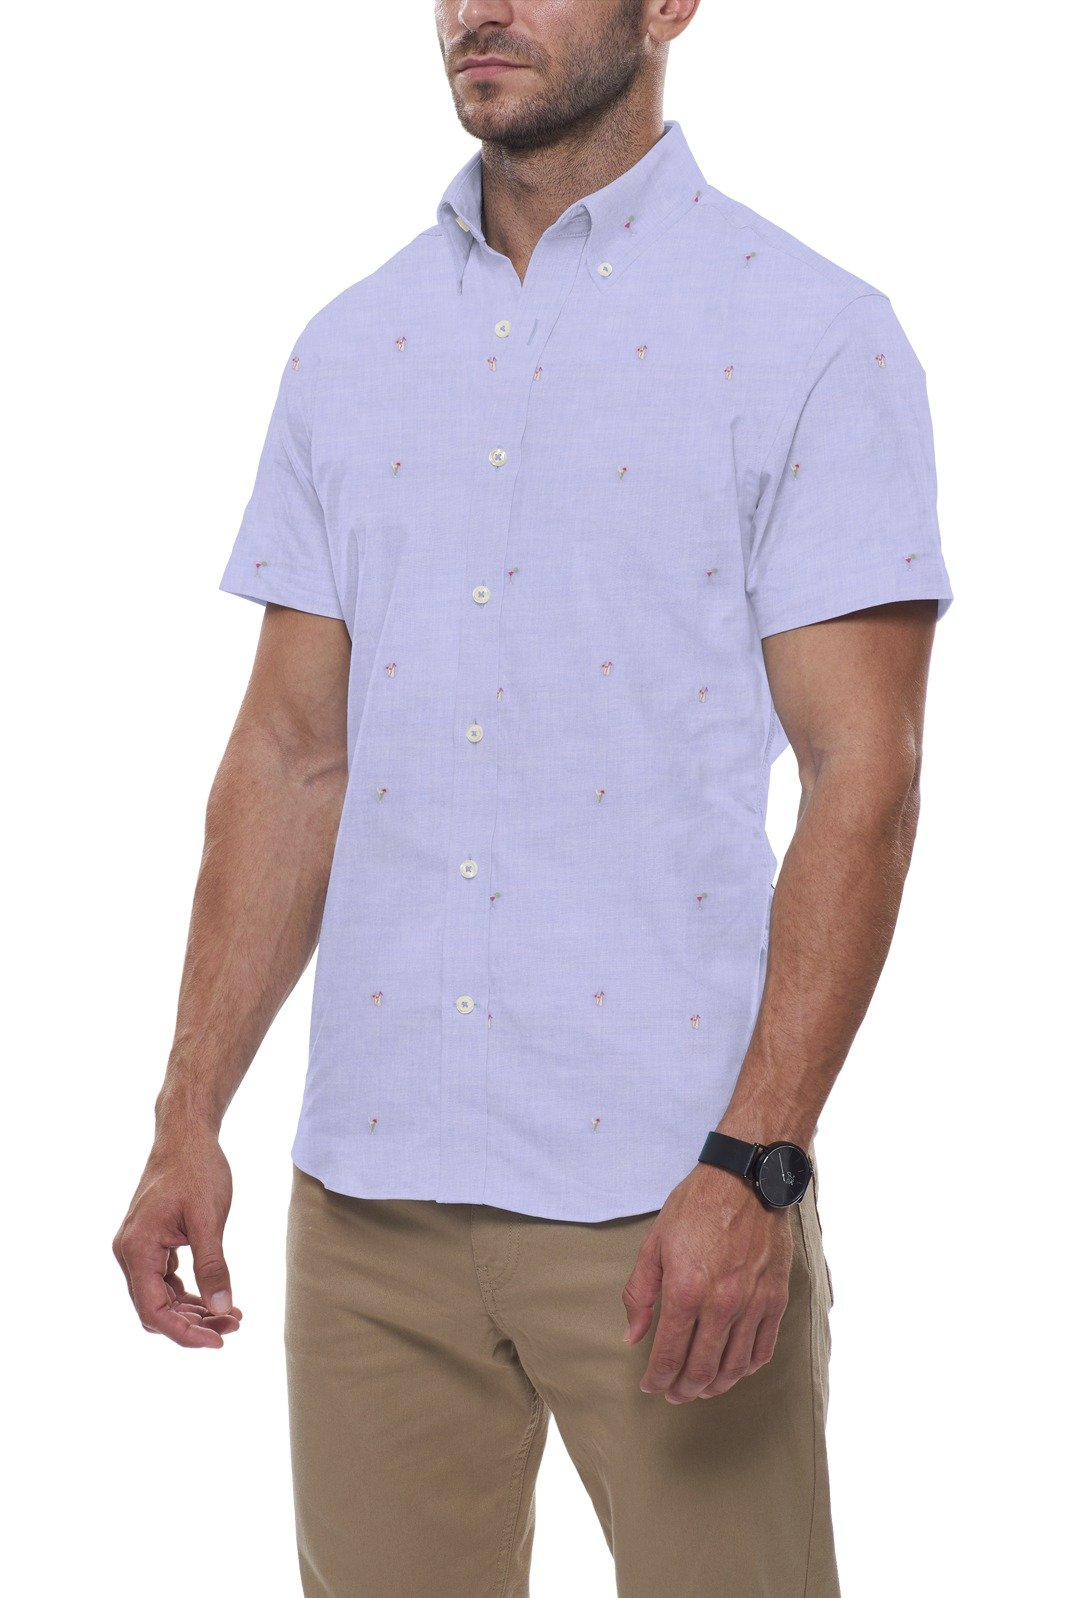 Beach Days Fil Coupe in Light Blue: Semi-Spread Collar, Short Sleeve